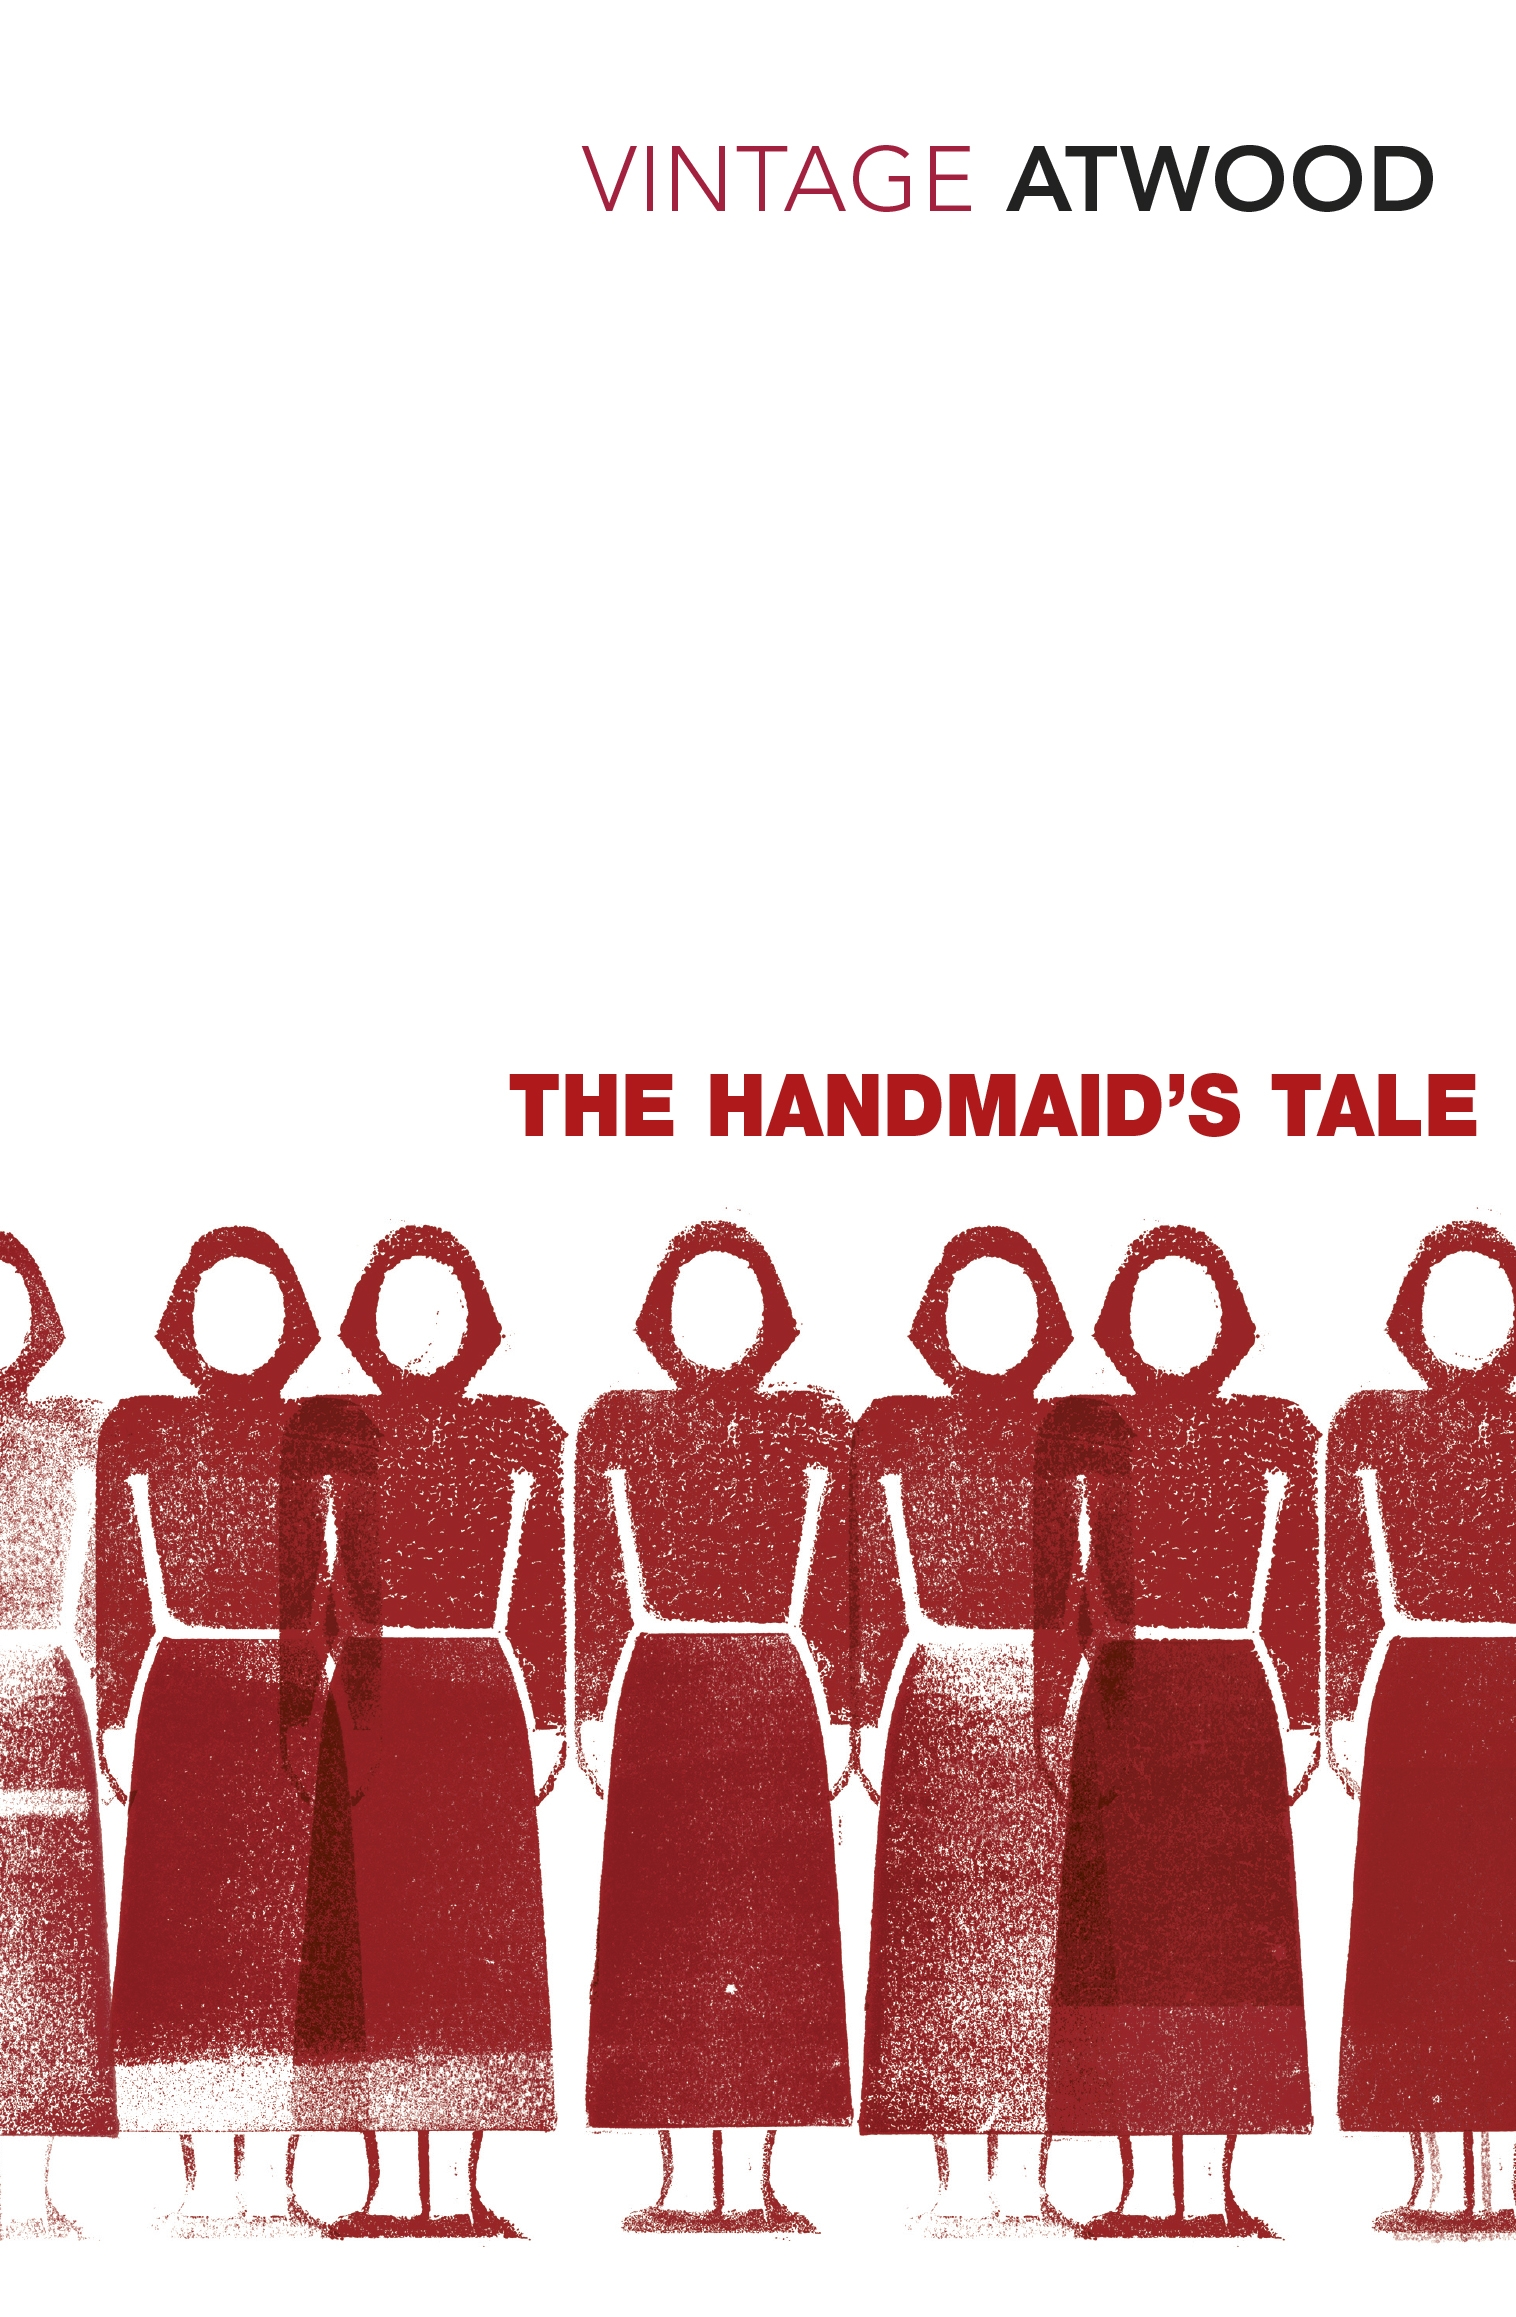 The Handmaid's Tale by Margaret Atwood, ISBN: 9780099511663